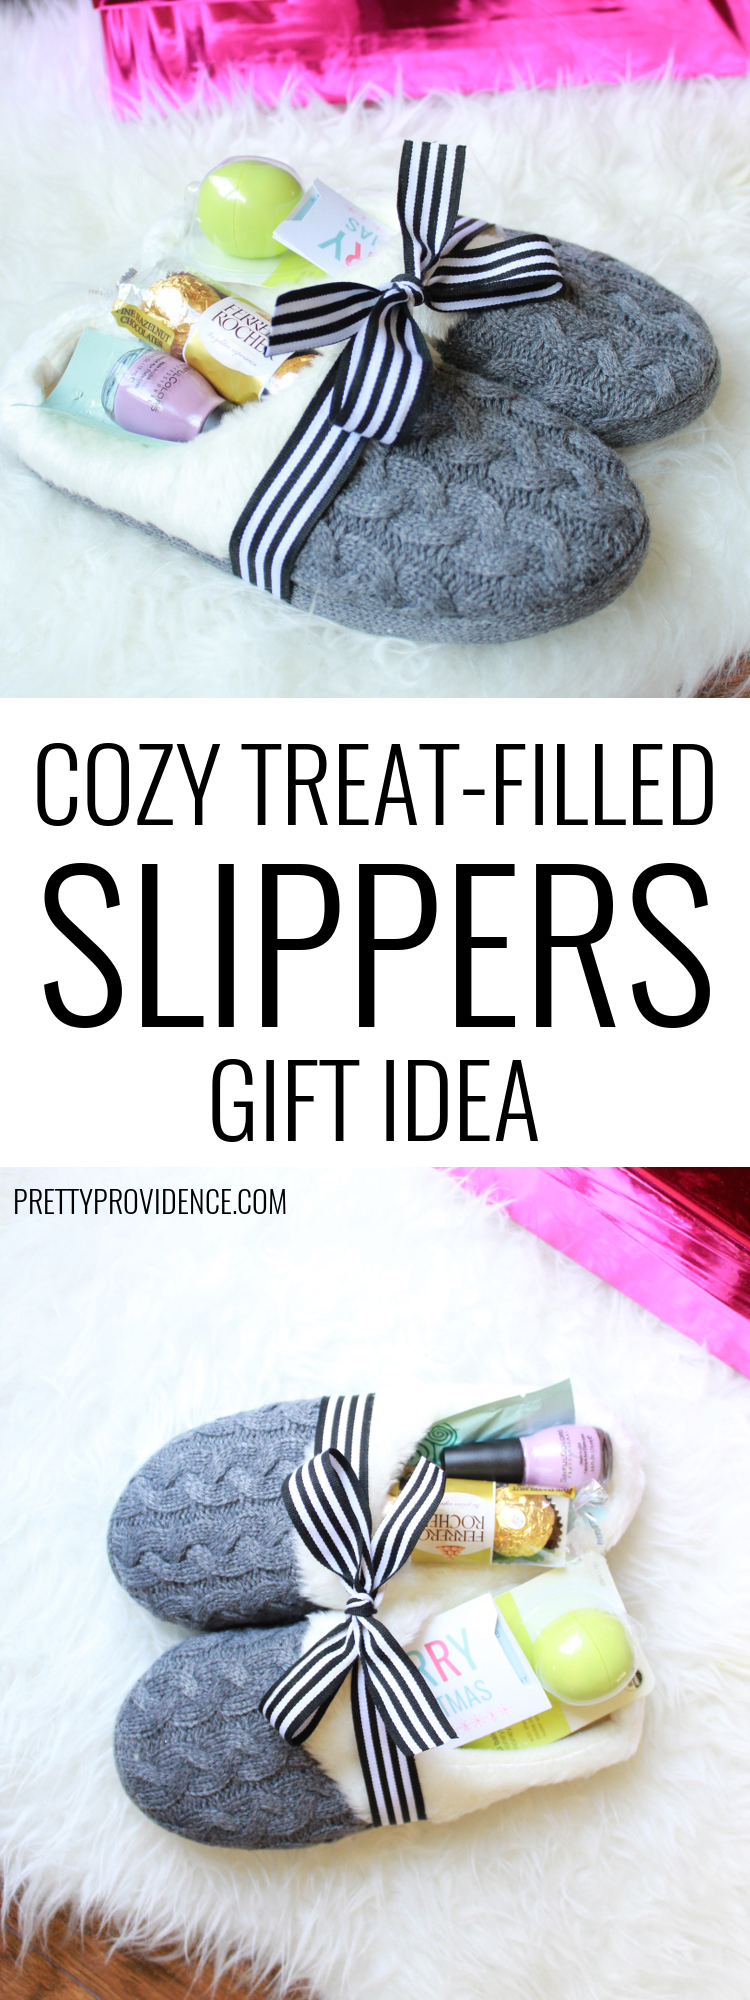 okay i love this idea get slippers and fill them with little treats or gift cards so fun prettyprovidencecom